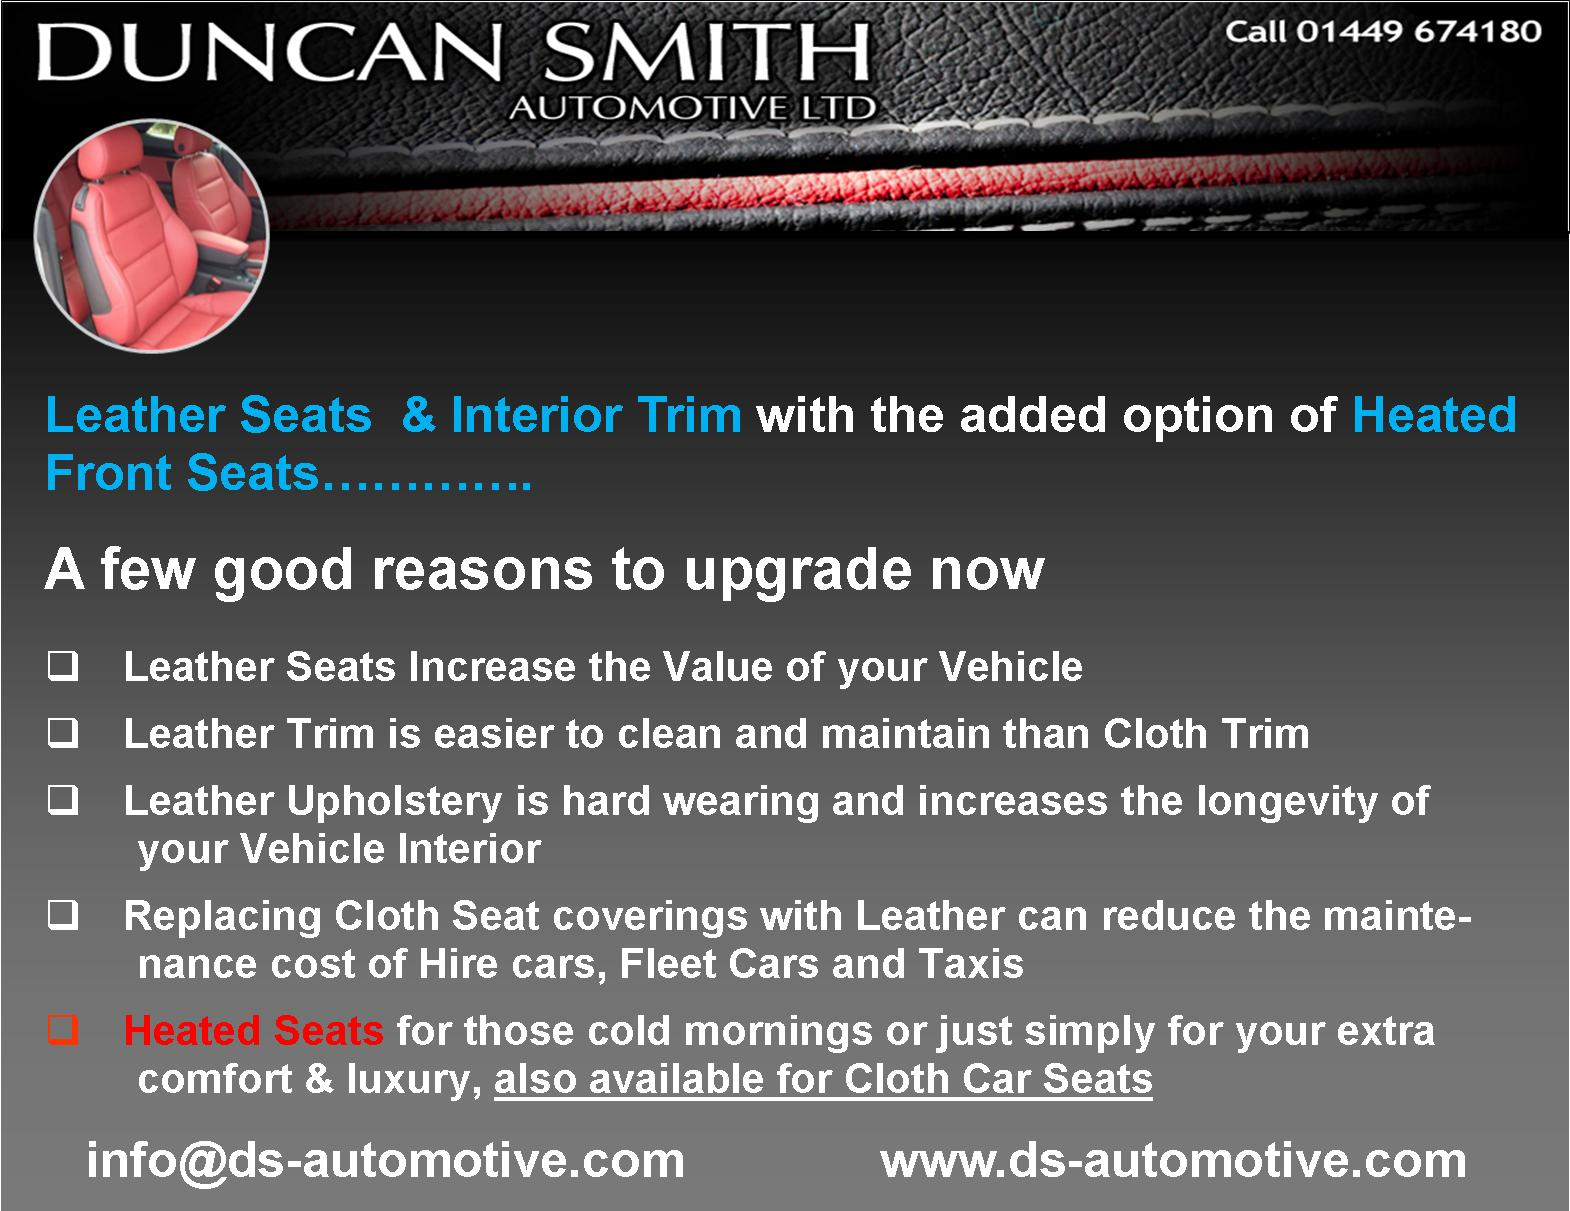 Duncan Smith Automotive Ltd